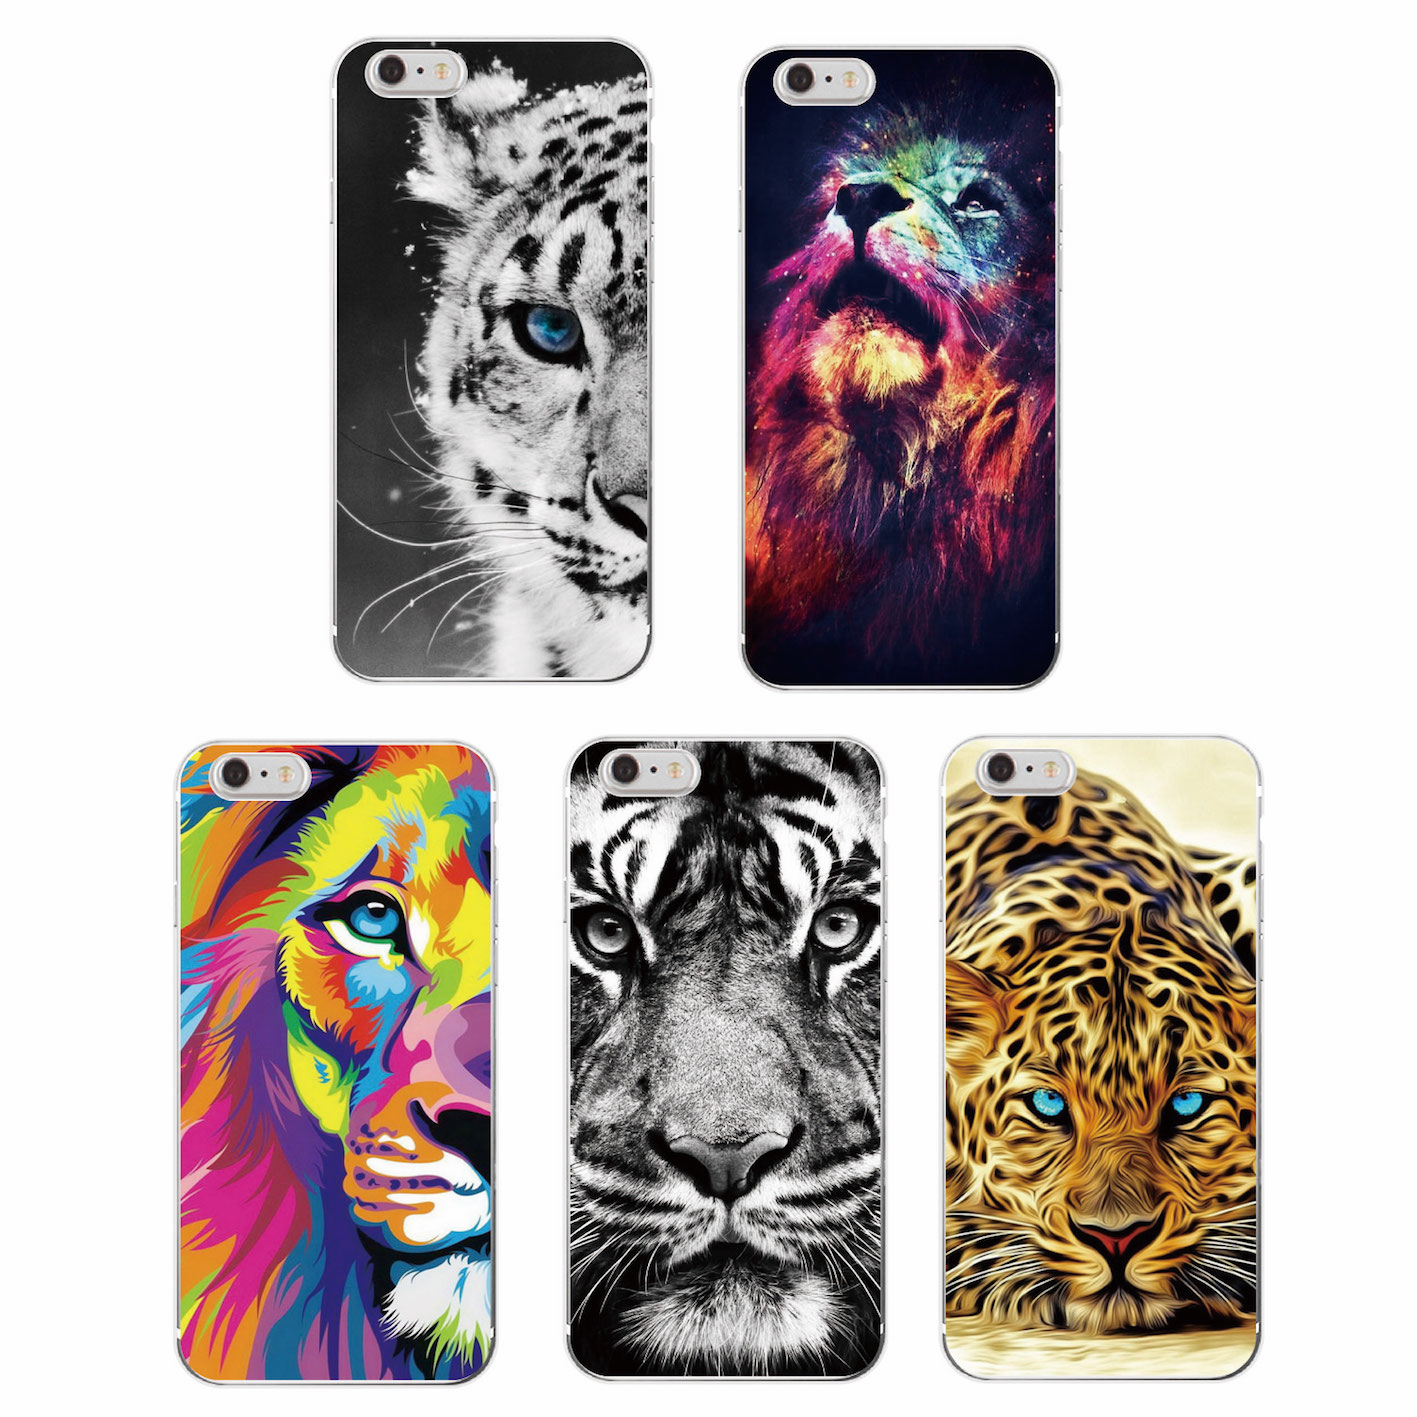 Mode Lion Tiger Panther Leopard Soft Case Coque Fundas För iPhone 11 7 7Plus 6 6S 5S 8 8Plus X XS Max SAMSUNG GALSXY S8 S8P